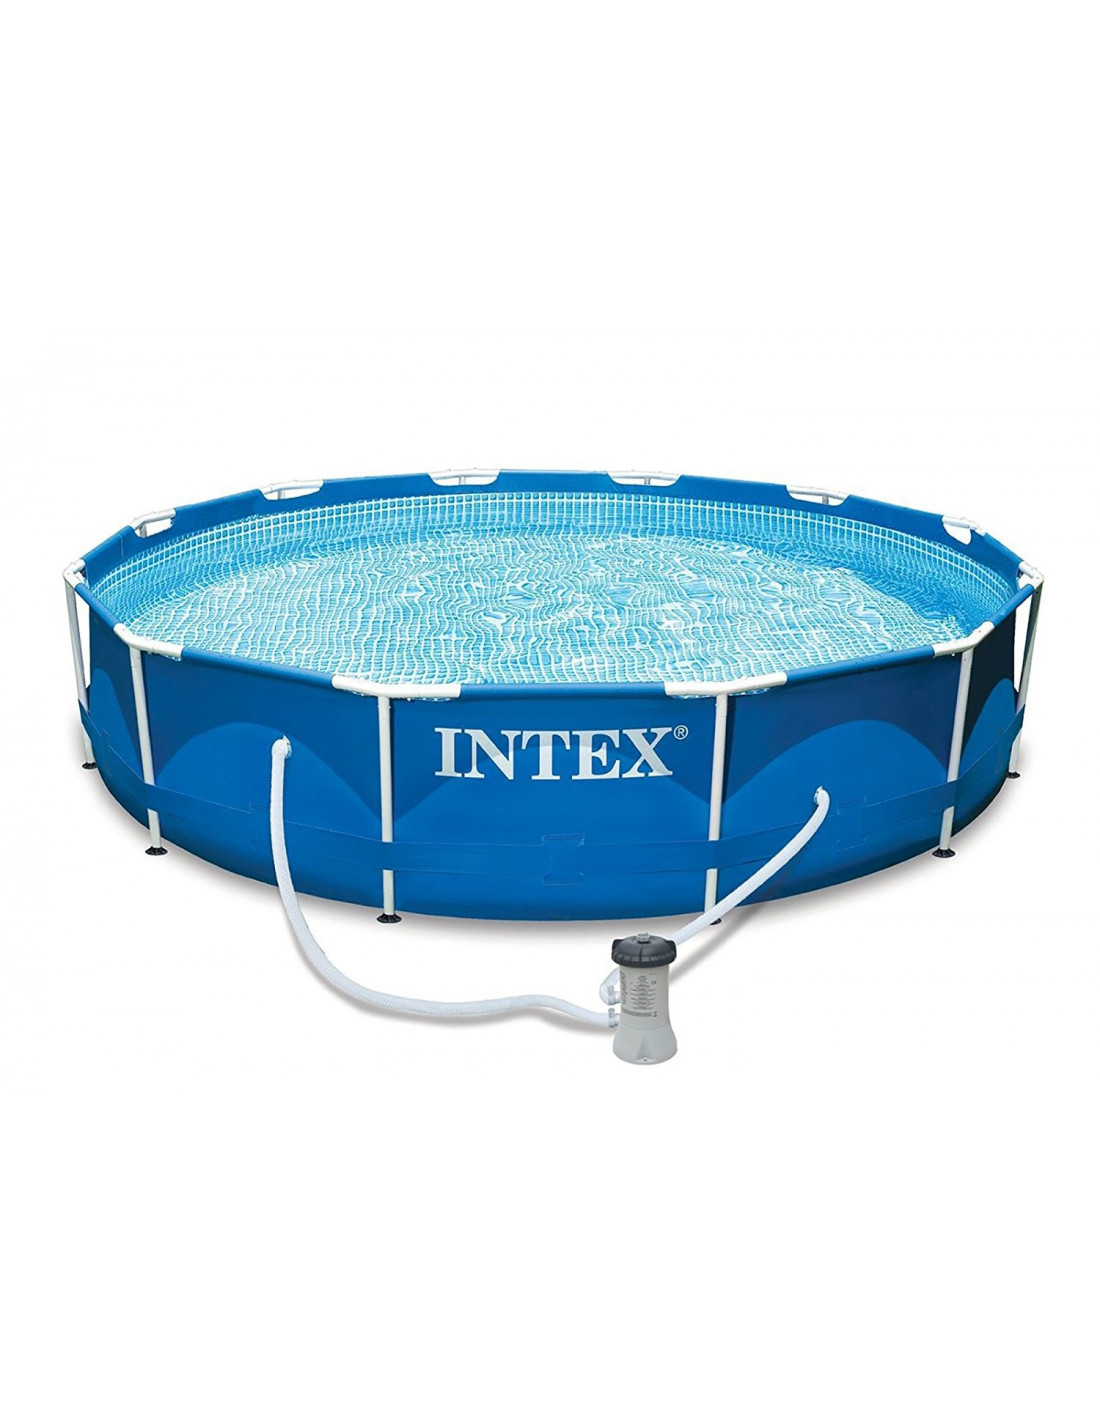 Intex Zwembad Frame Intex Piscine Tubulaire Ronde Metal Frame 366 X 76 Cm